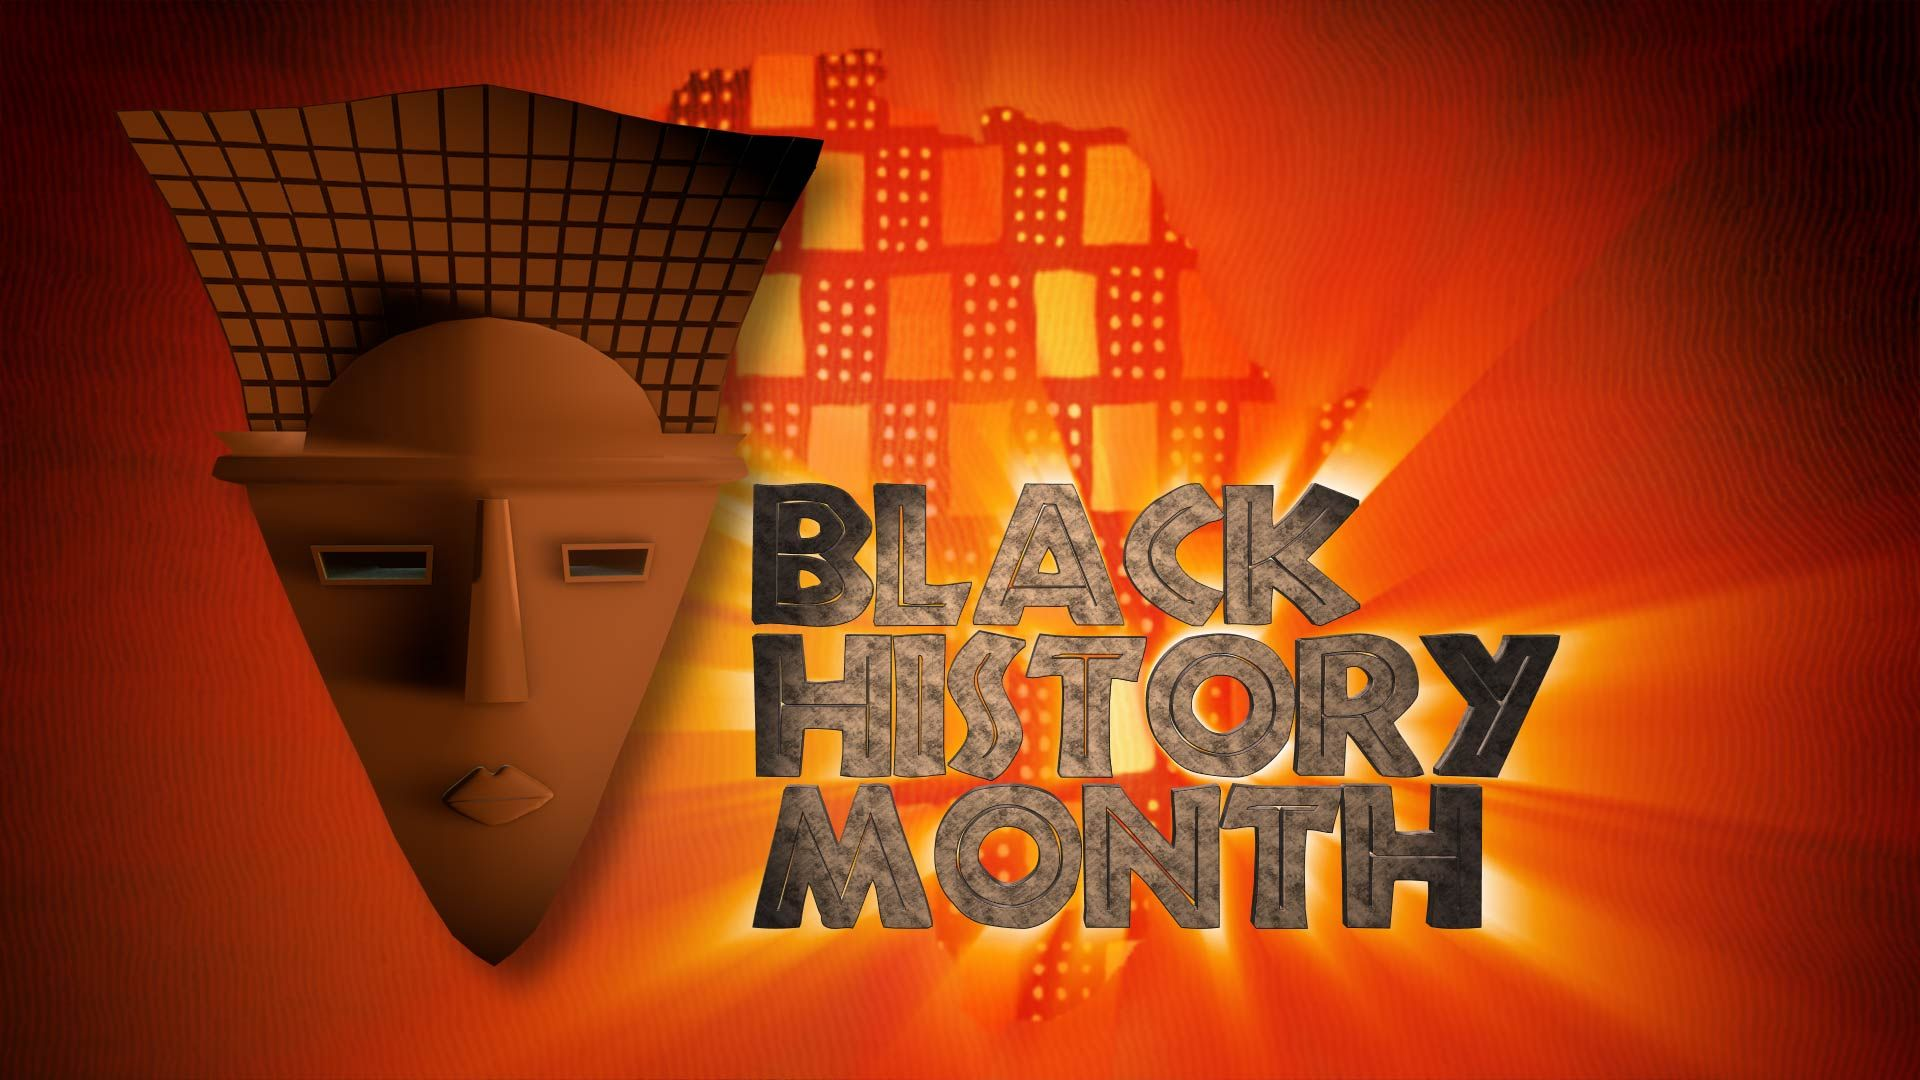 Black history celebration church bulletin black history month black history celebration church bulletin black history month celebration church media graphics pinterest celebration church black history and toneelgroepblik